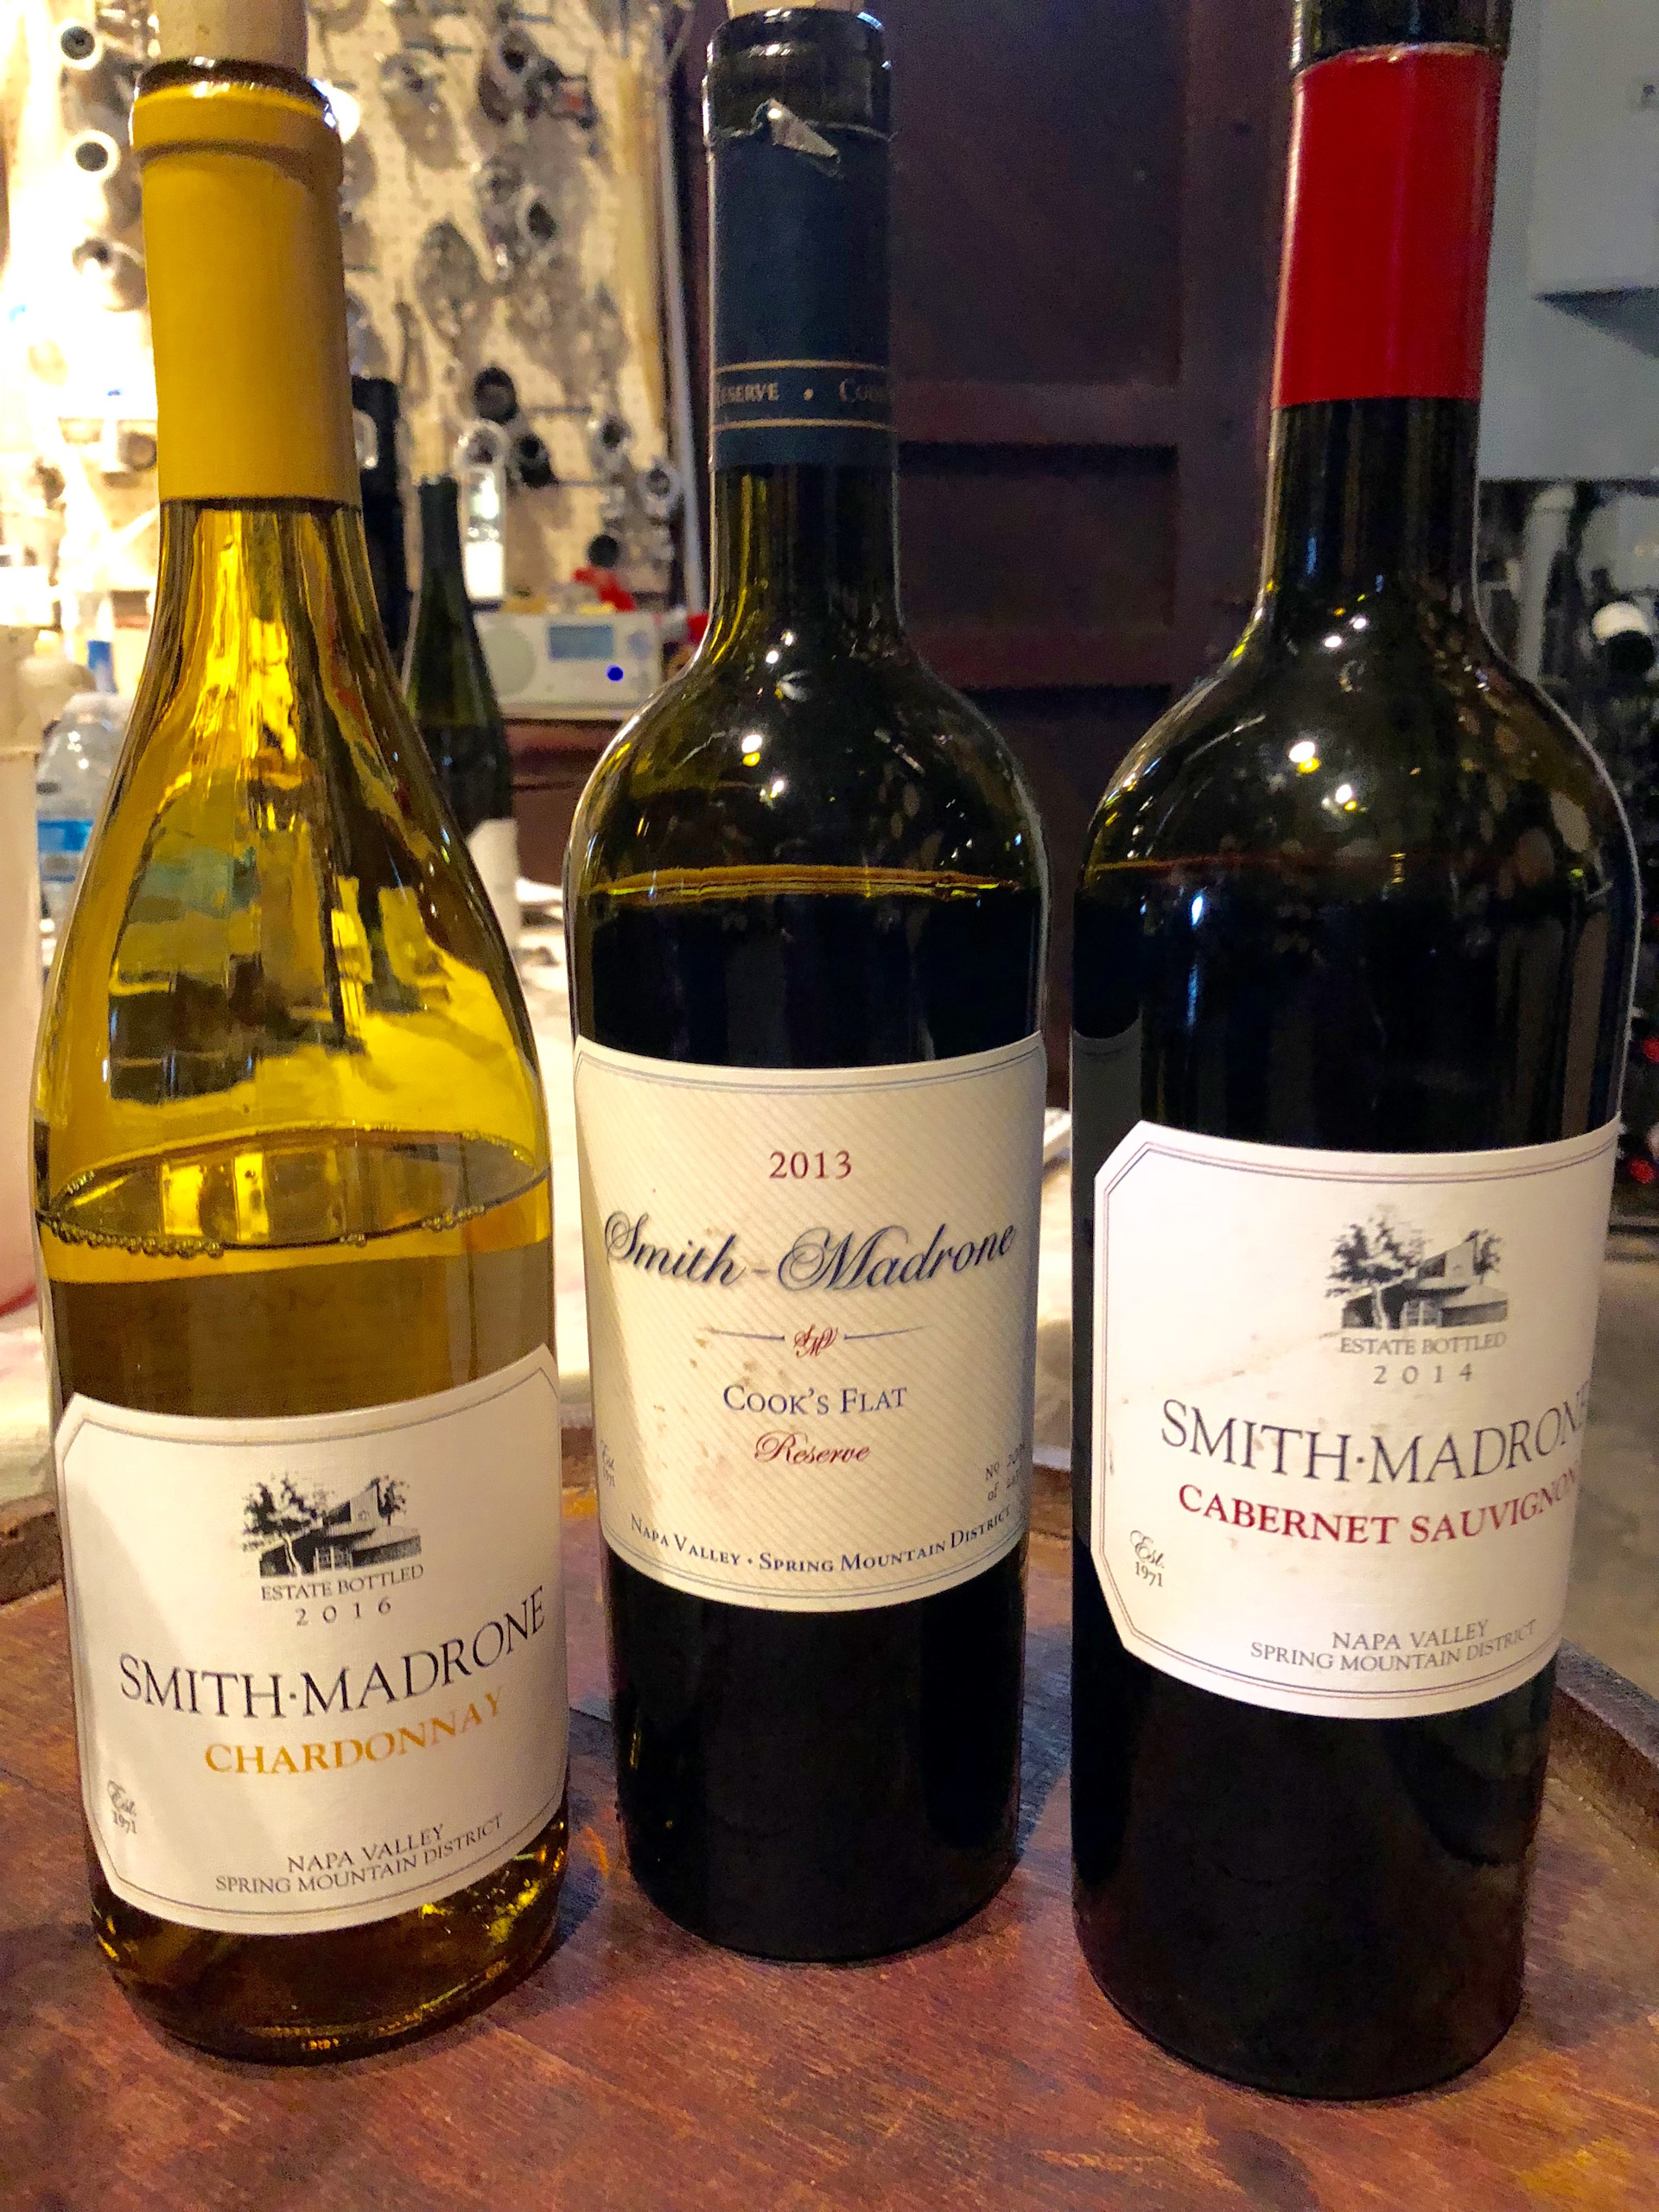 Some of Smith-Madrone's exceptional wines including a 2016 Chardonnay, 2013 Cook's Flat Reserve and 2014 Cabernet Sauvignon